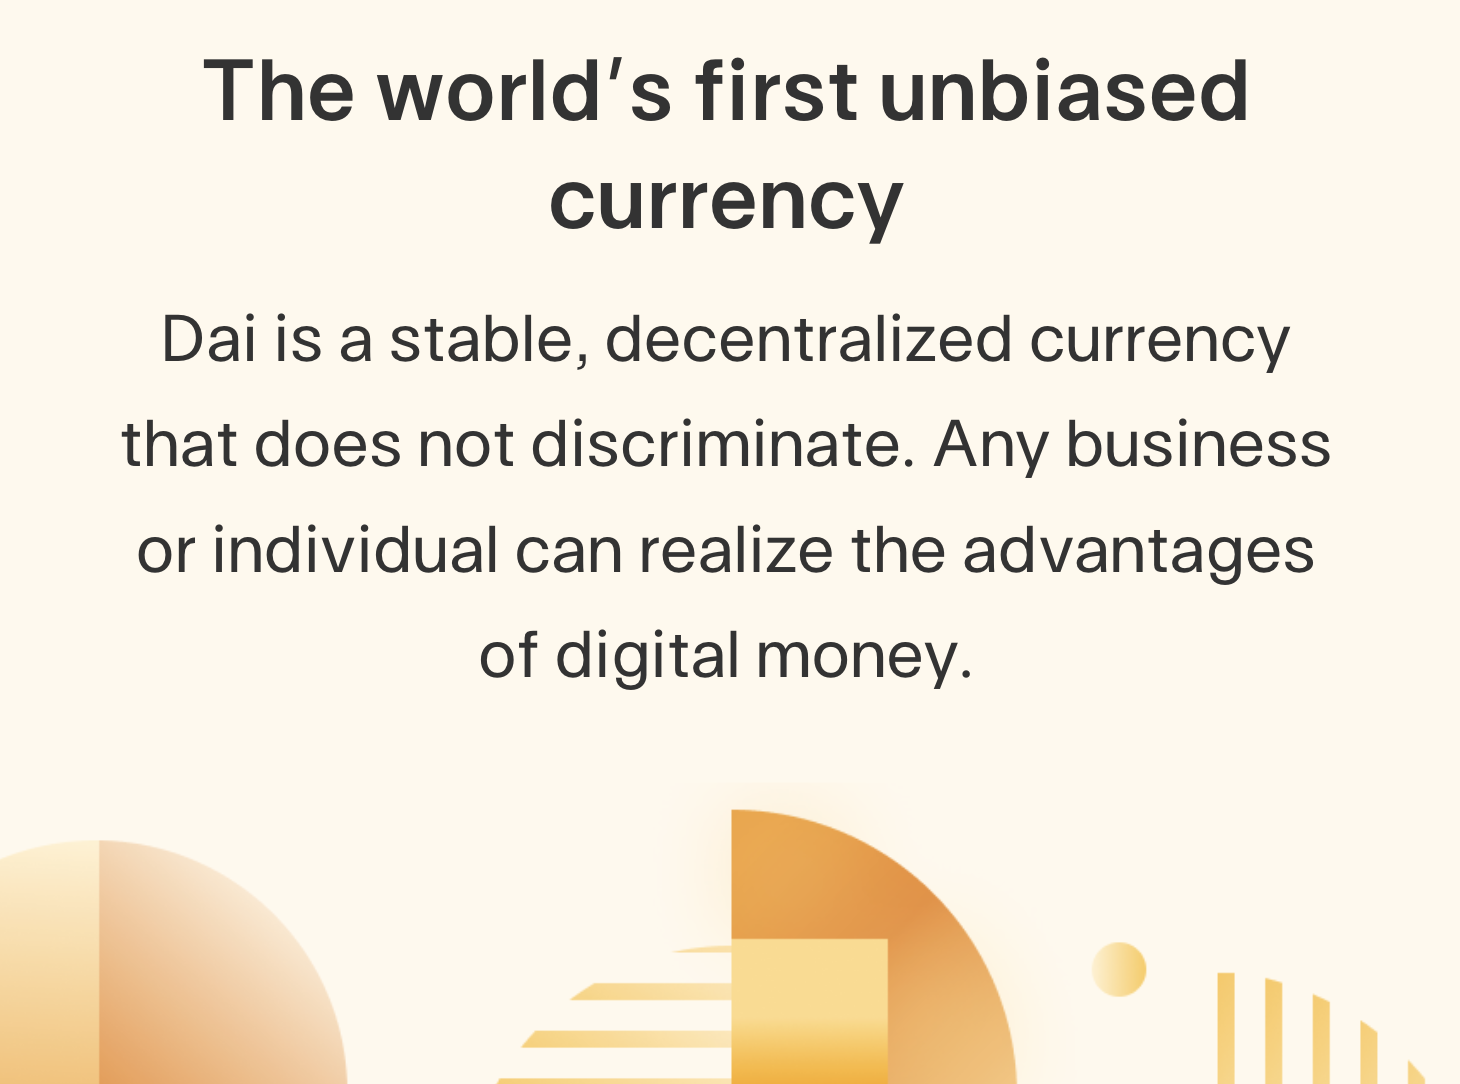 MakerDAO's less volatile Dai stablecoin can help alleviate the fear of cryptocurrency.